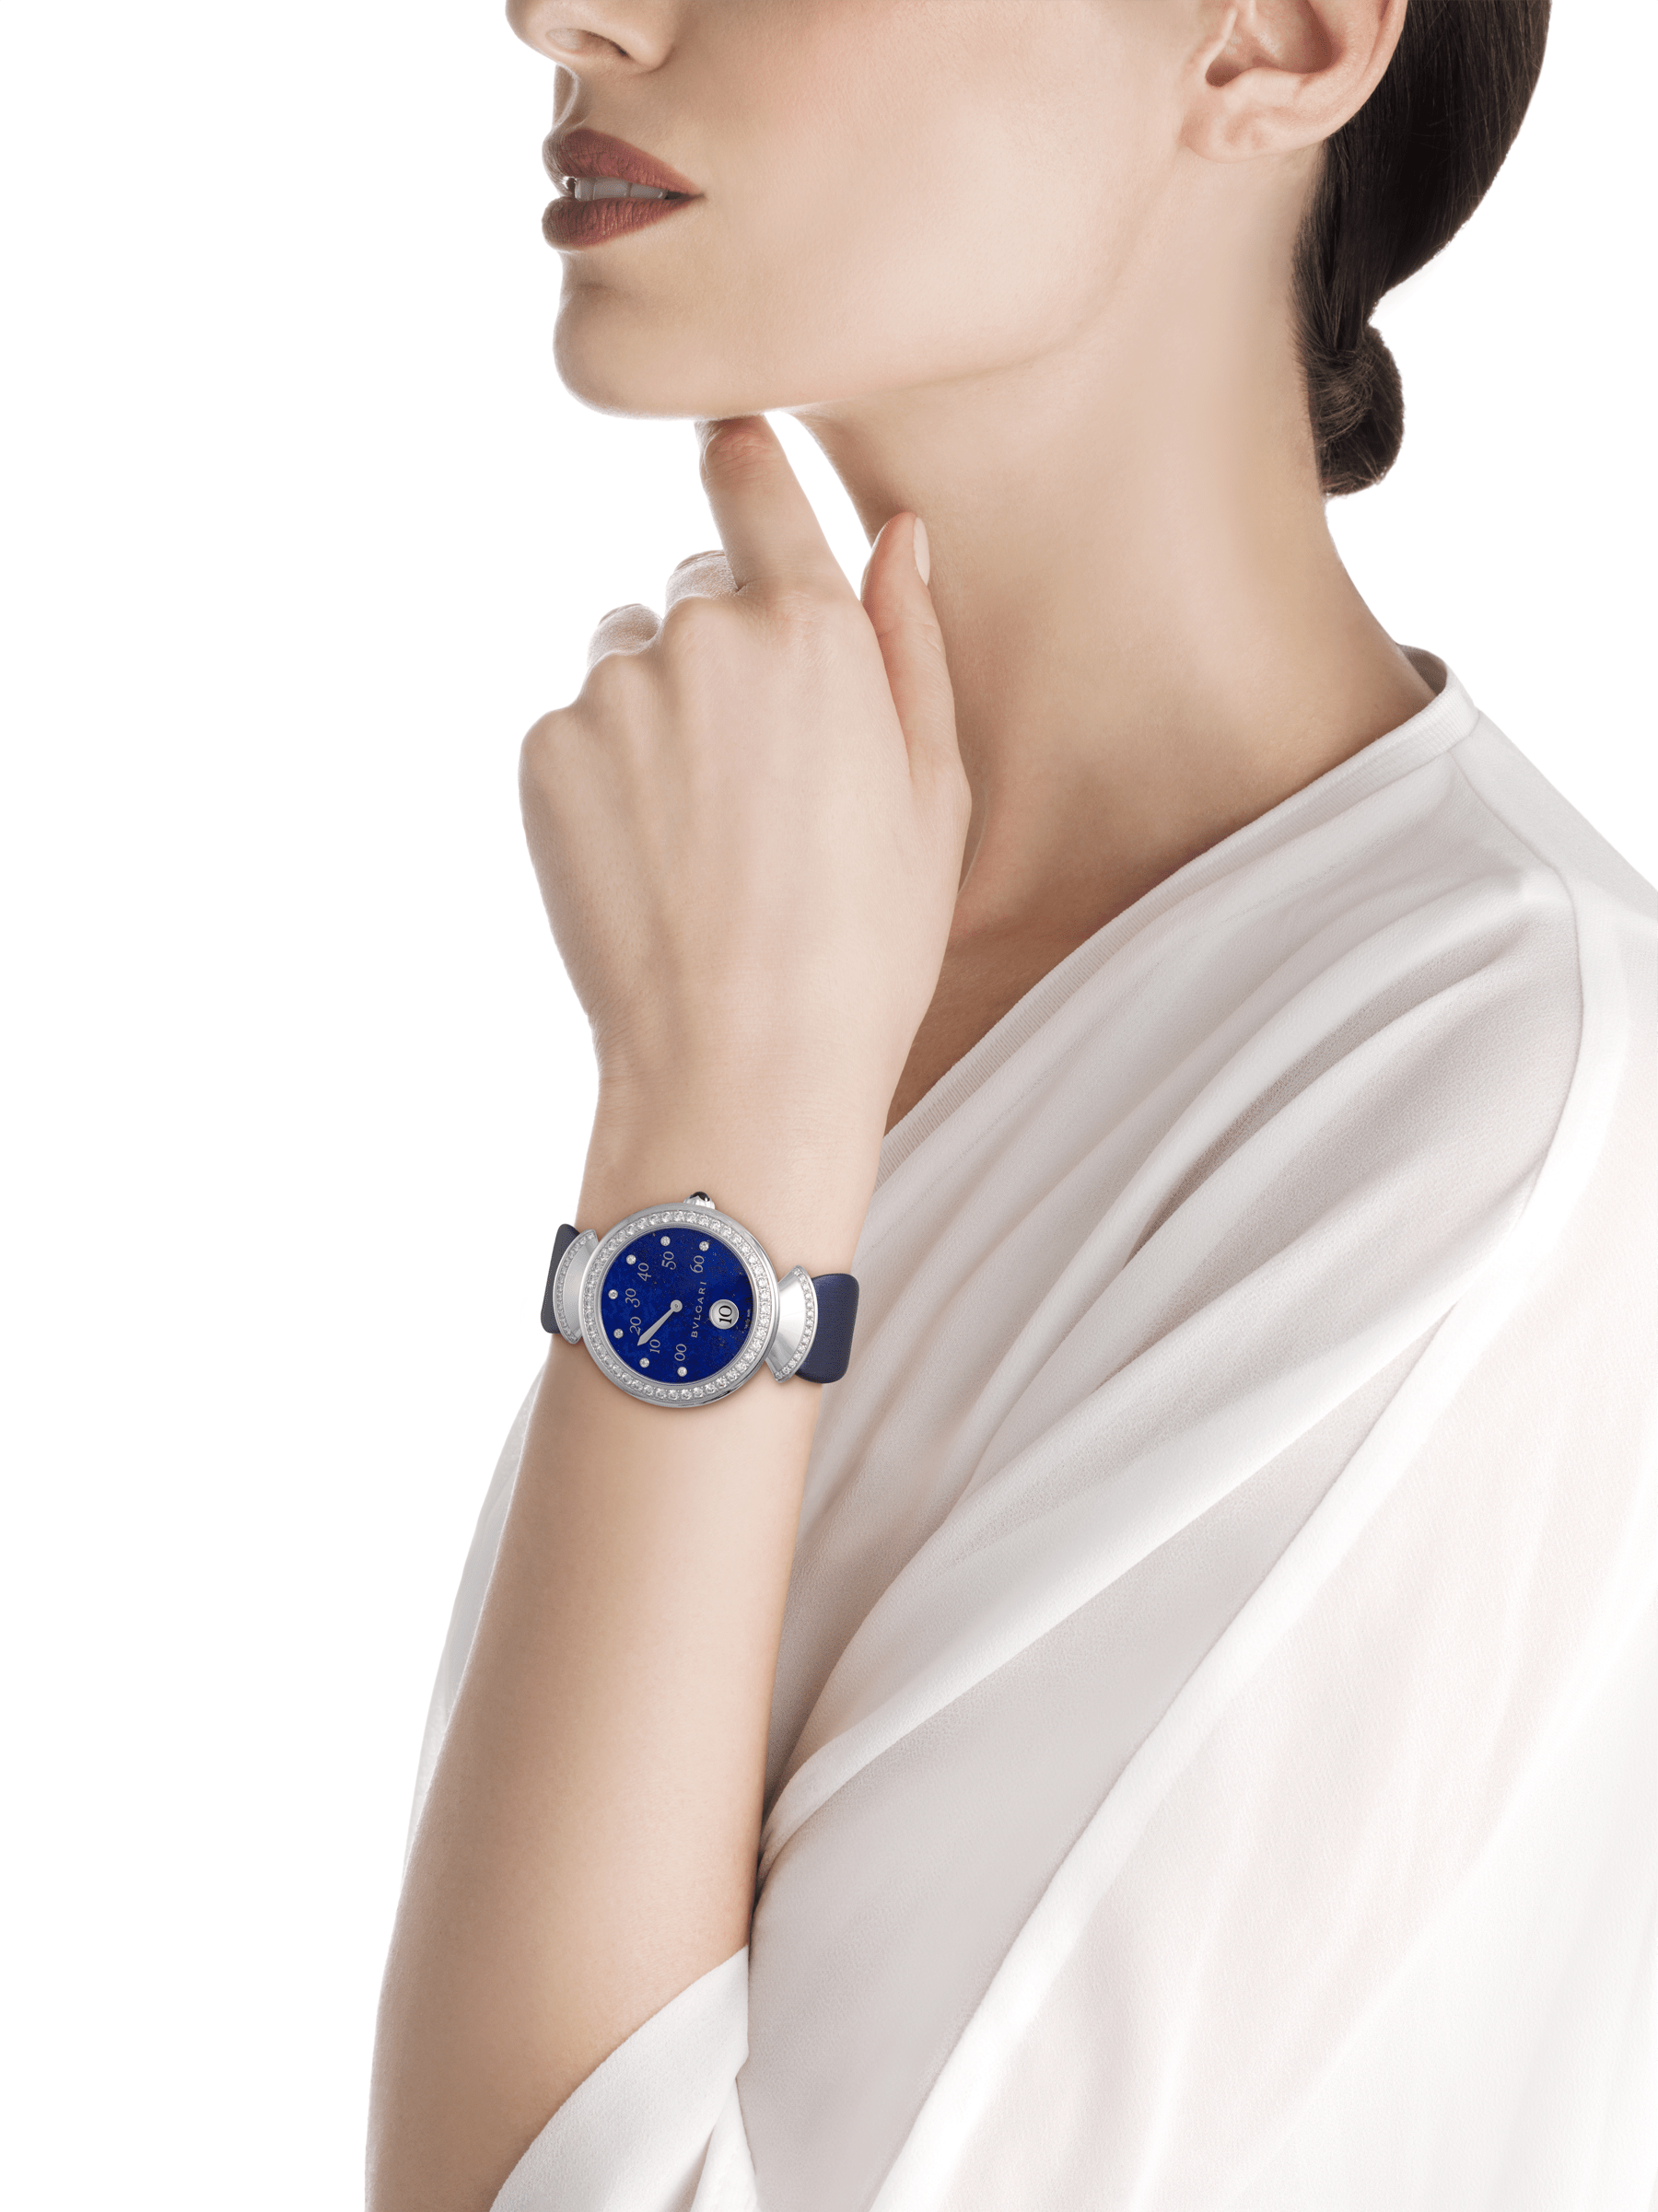 DIVAS' DREAM watch with mechanical manufacture movement, jumping hours, retrograde minutes (180°) and automatic winding. 18 kt white gold case set with brilliant-cut diamonds, lapis lazuli dial, diamond indexes and blue satin bracelet 102544 image 2